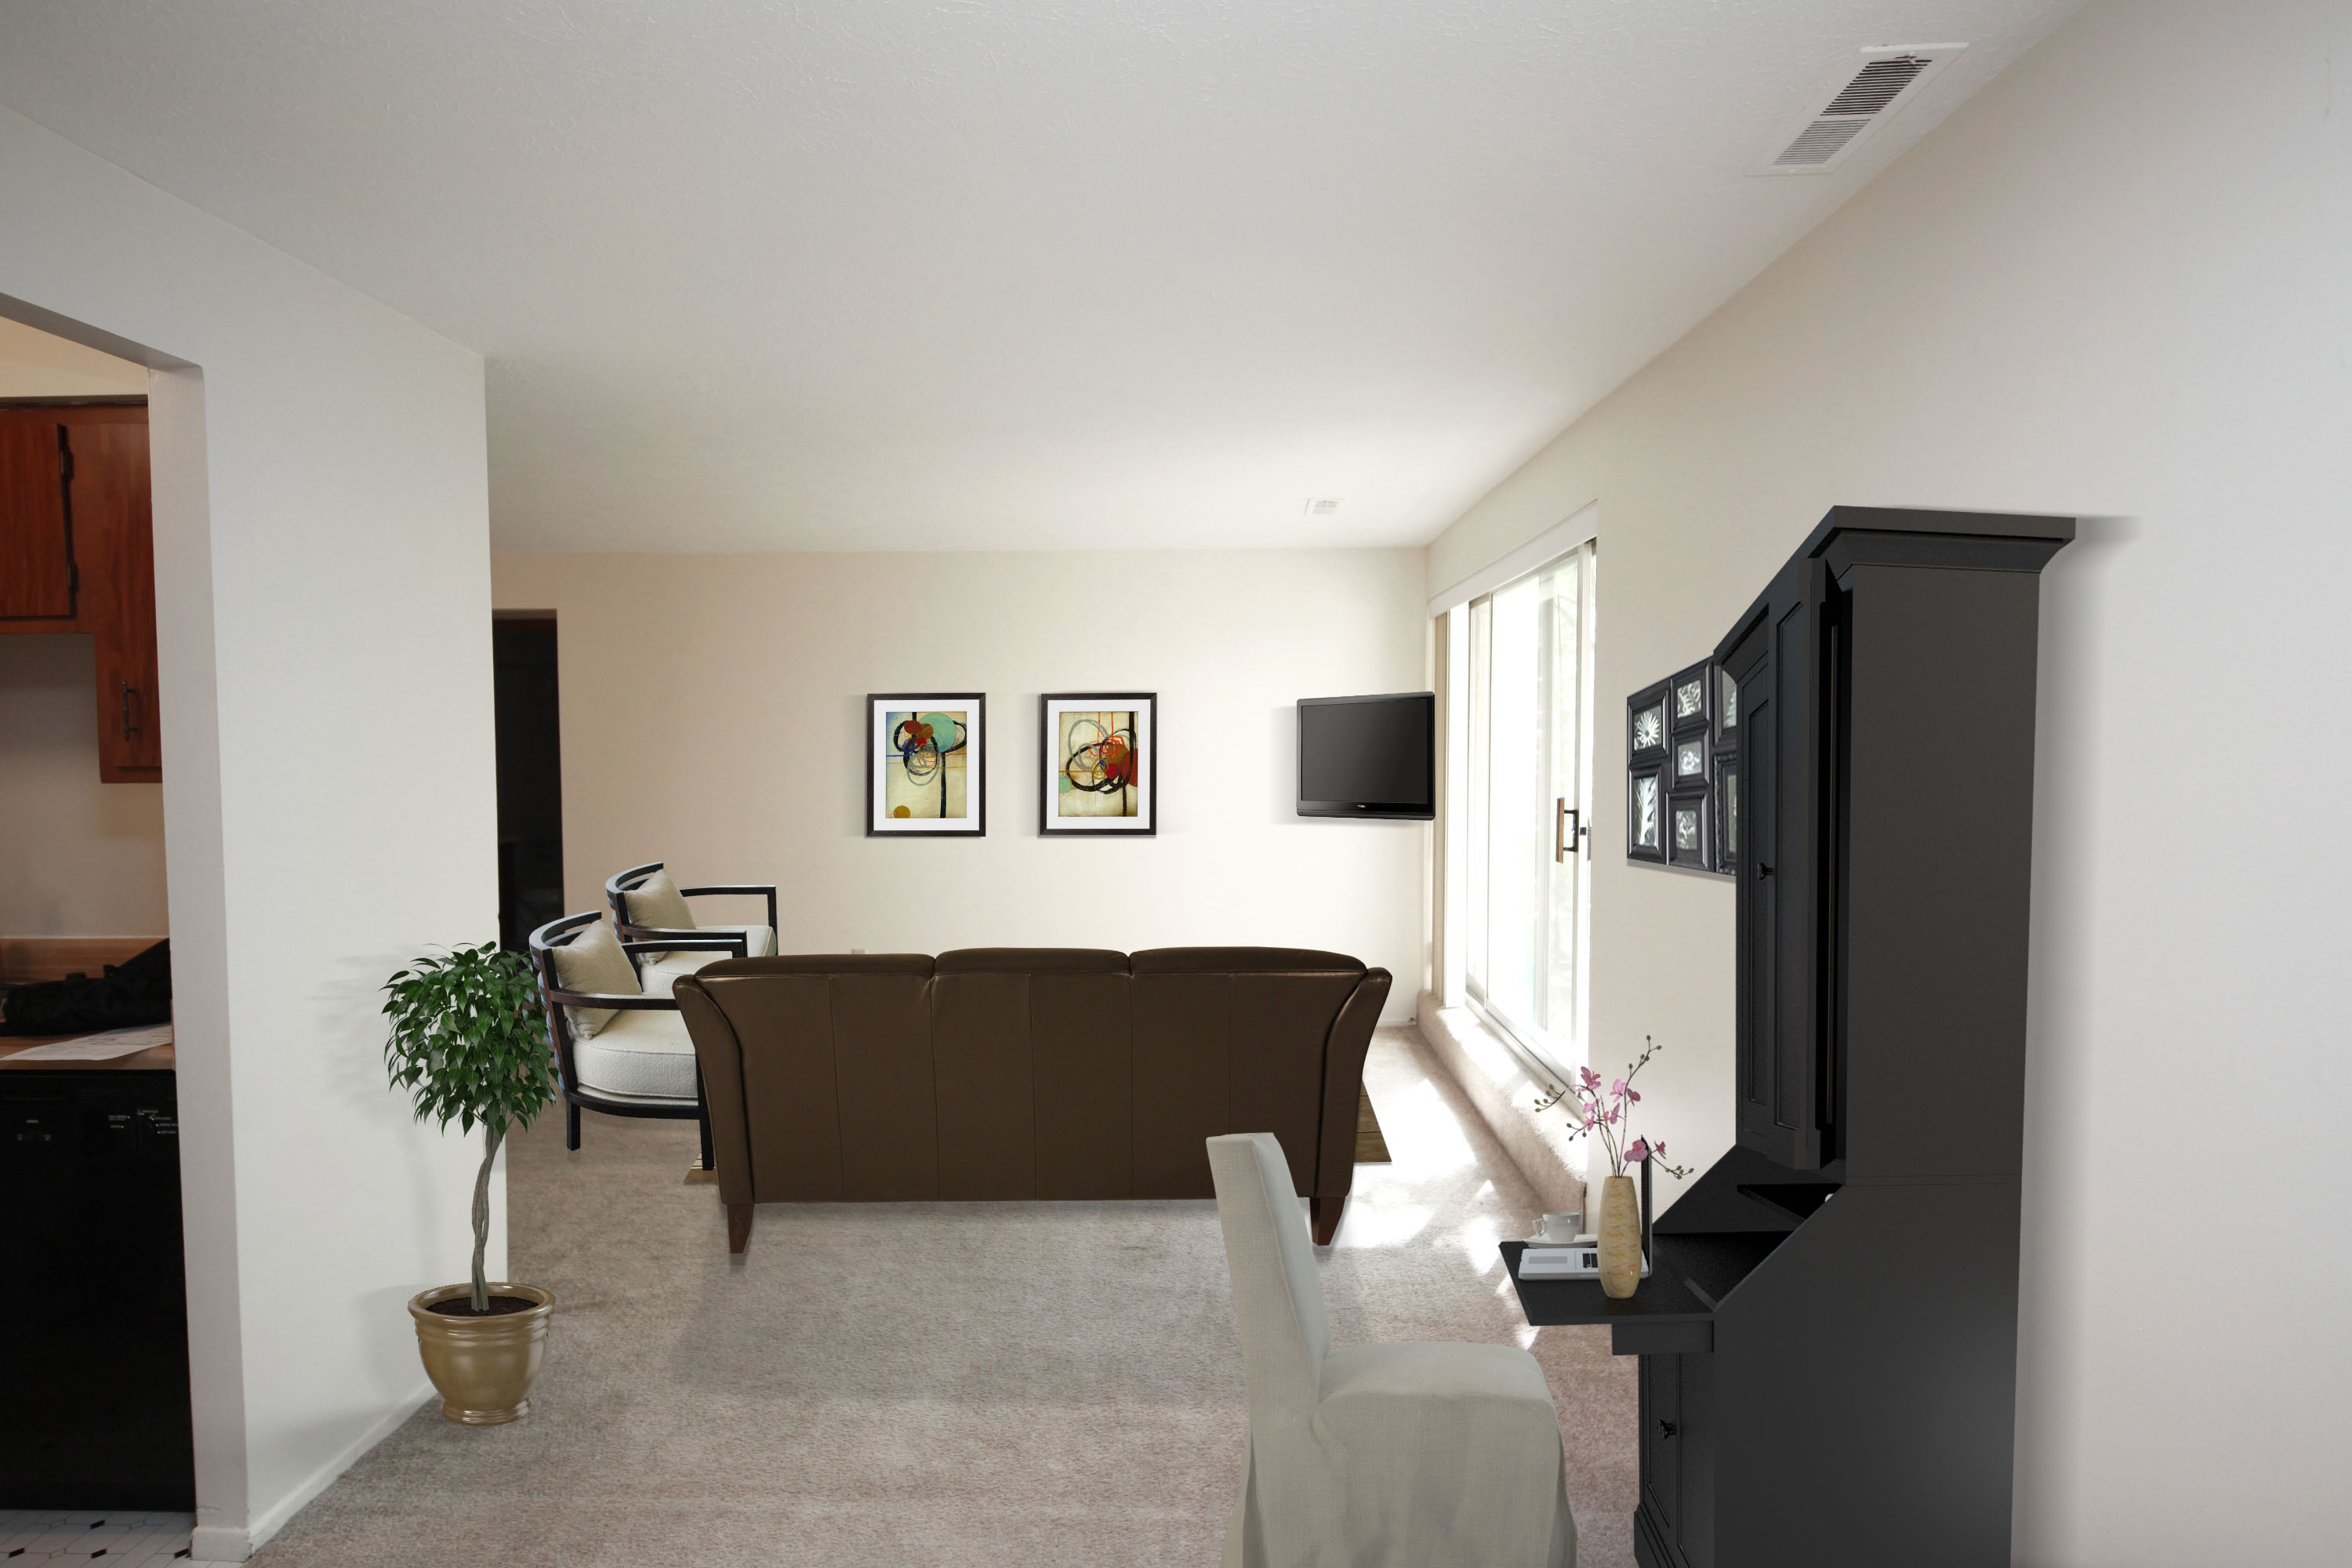 2C Entry Furnished at the Greenridge on Euclid Apartments in Euclid, OH